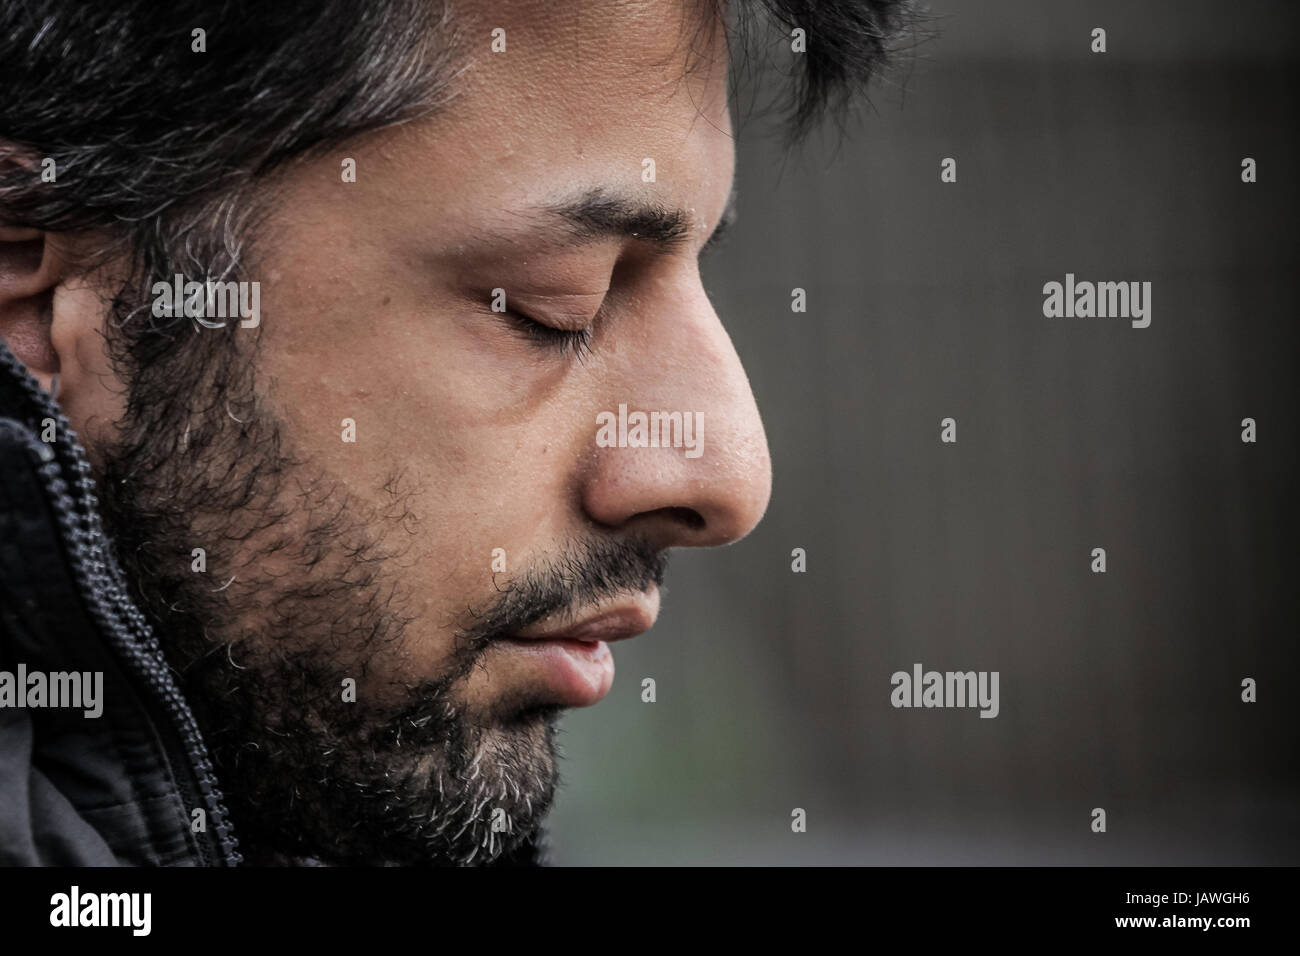 Shrien Dewani arrives at Belmarsh Magistrates Court in London, UK. - Stock Image